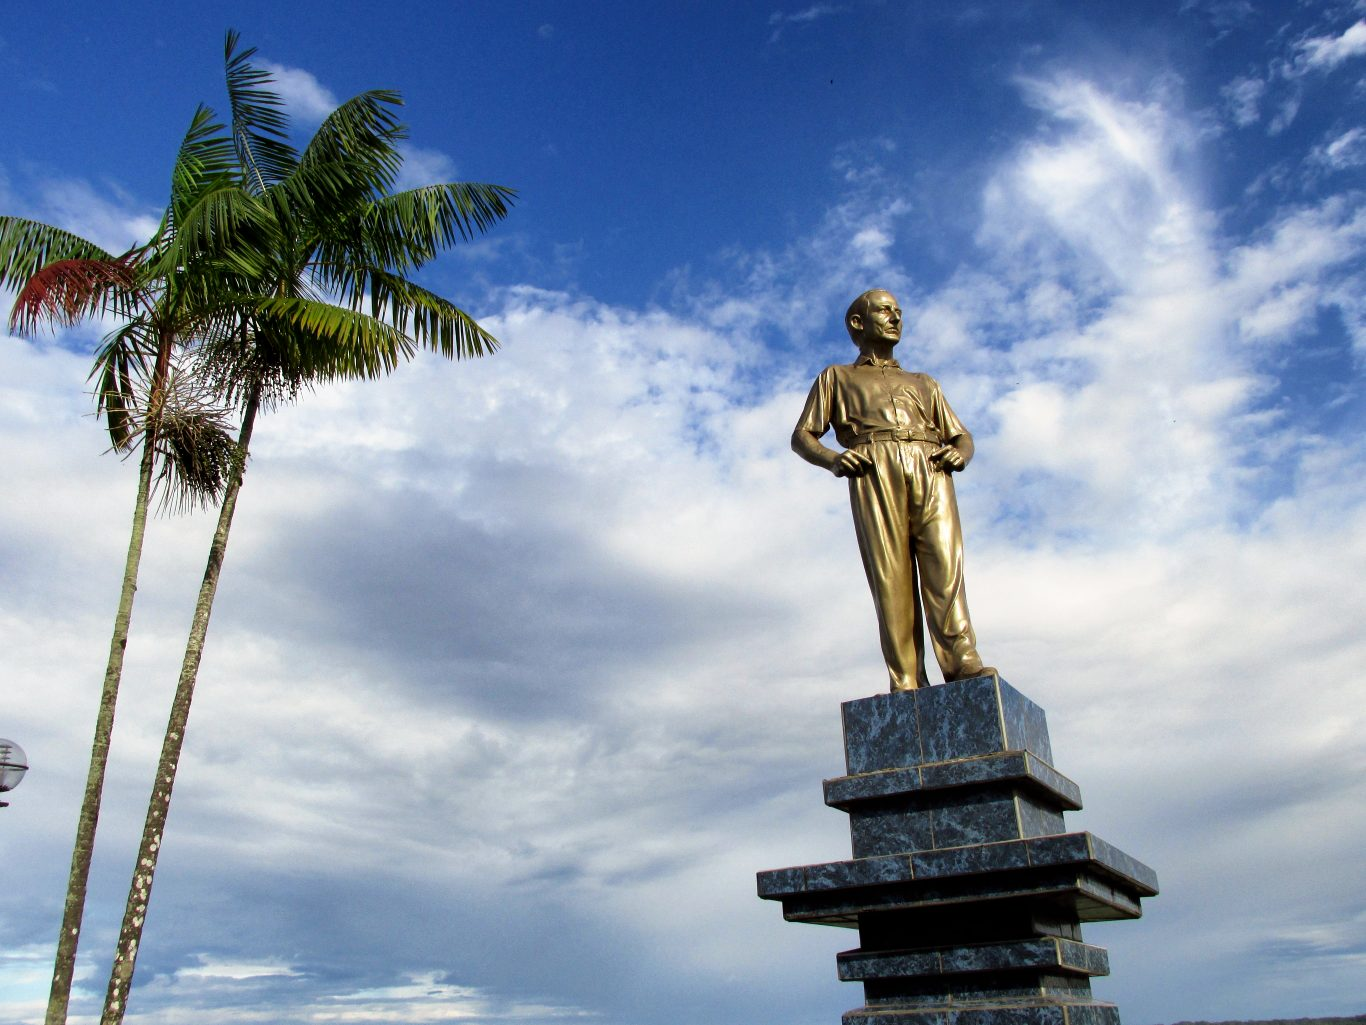 Statue on Iquitos boulevard